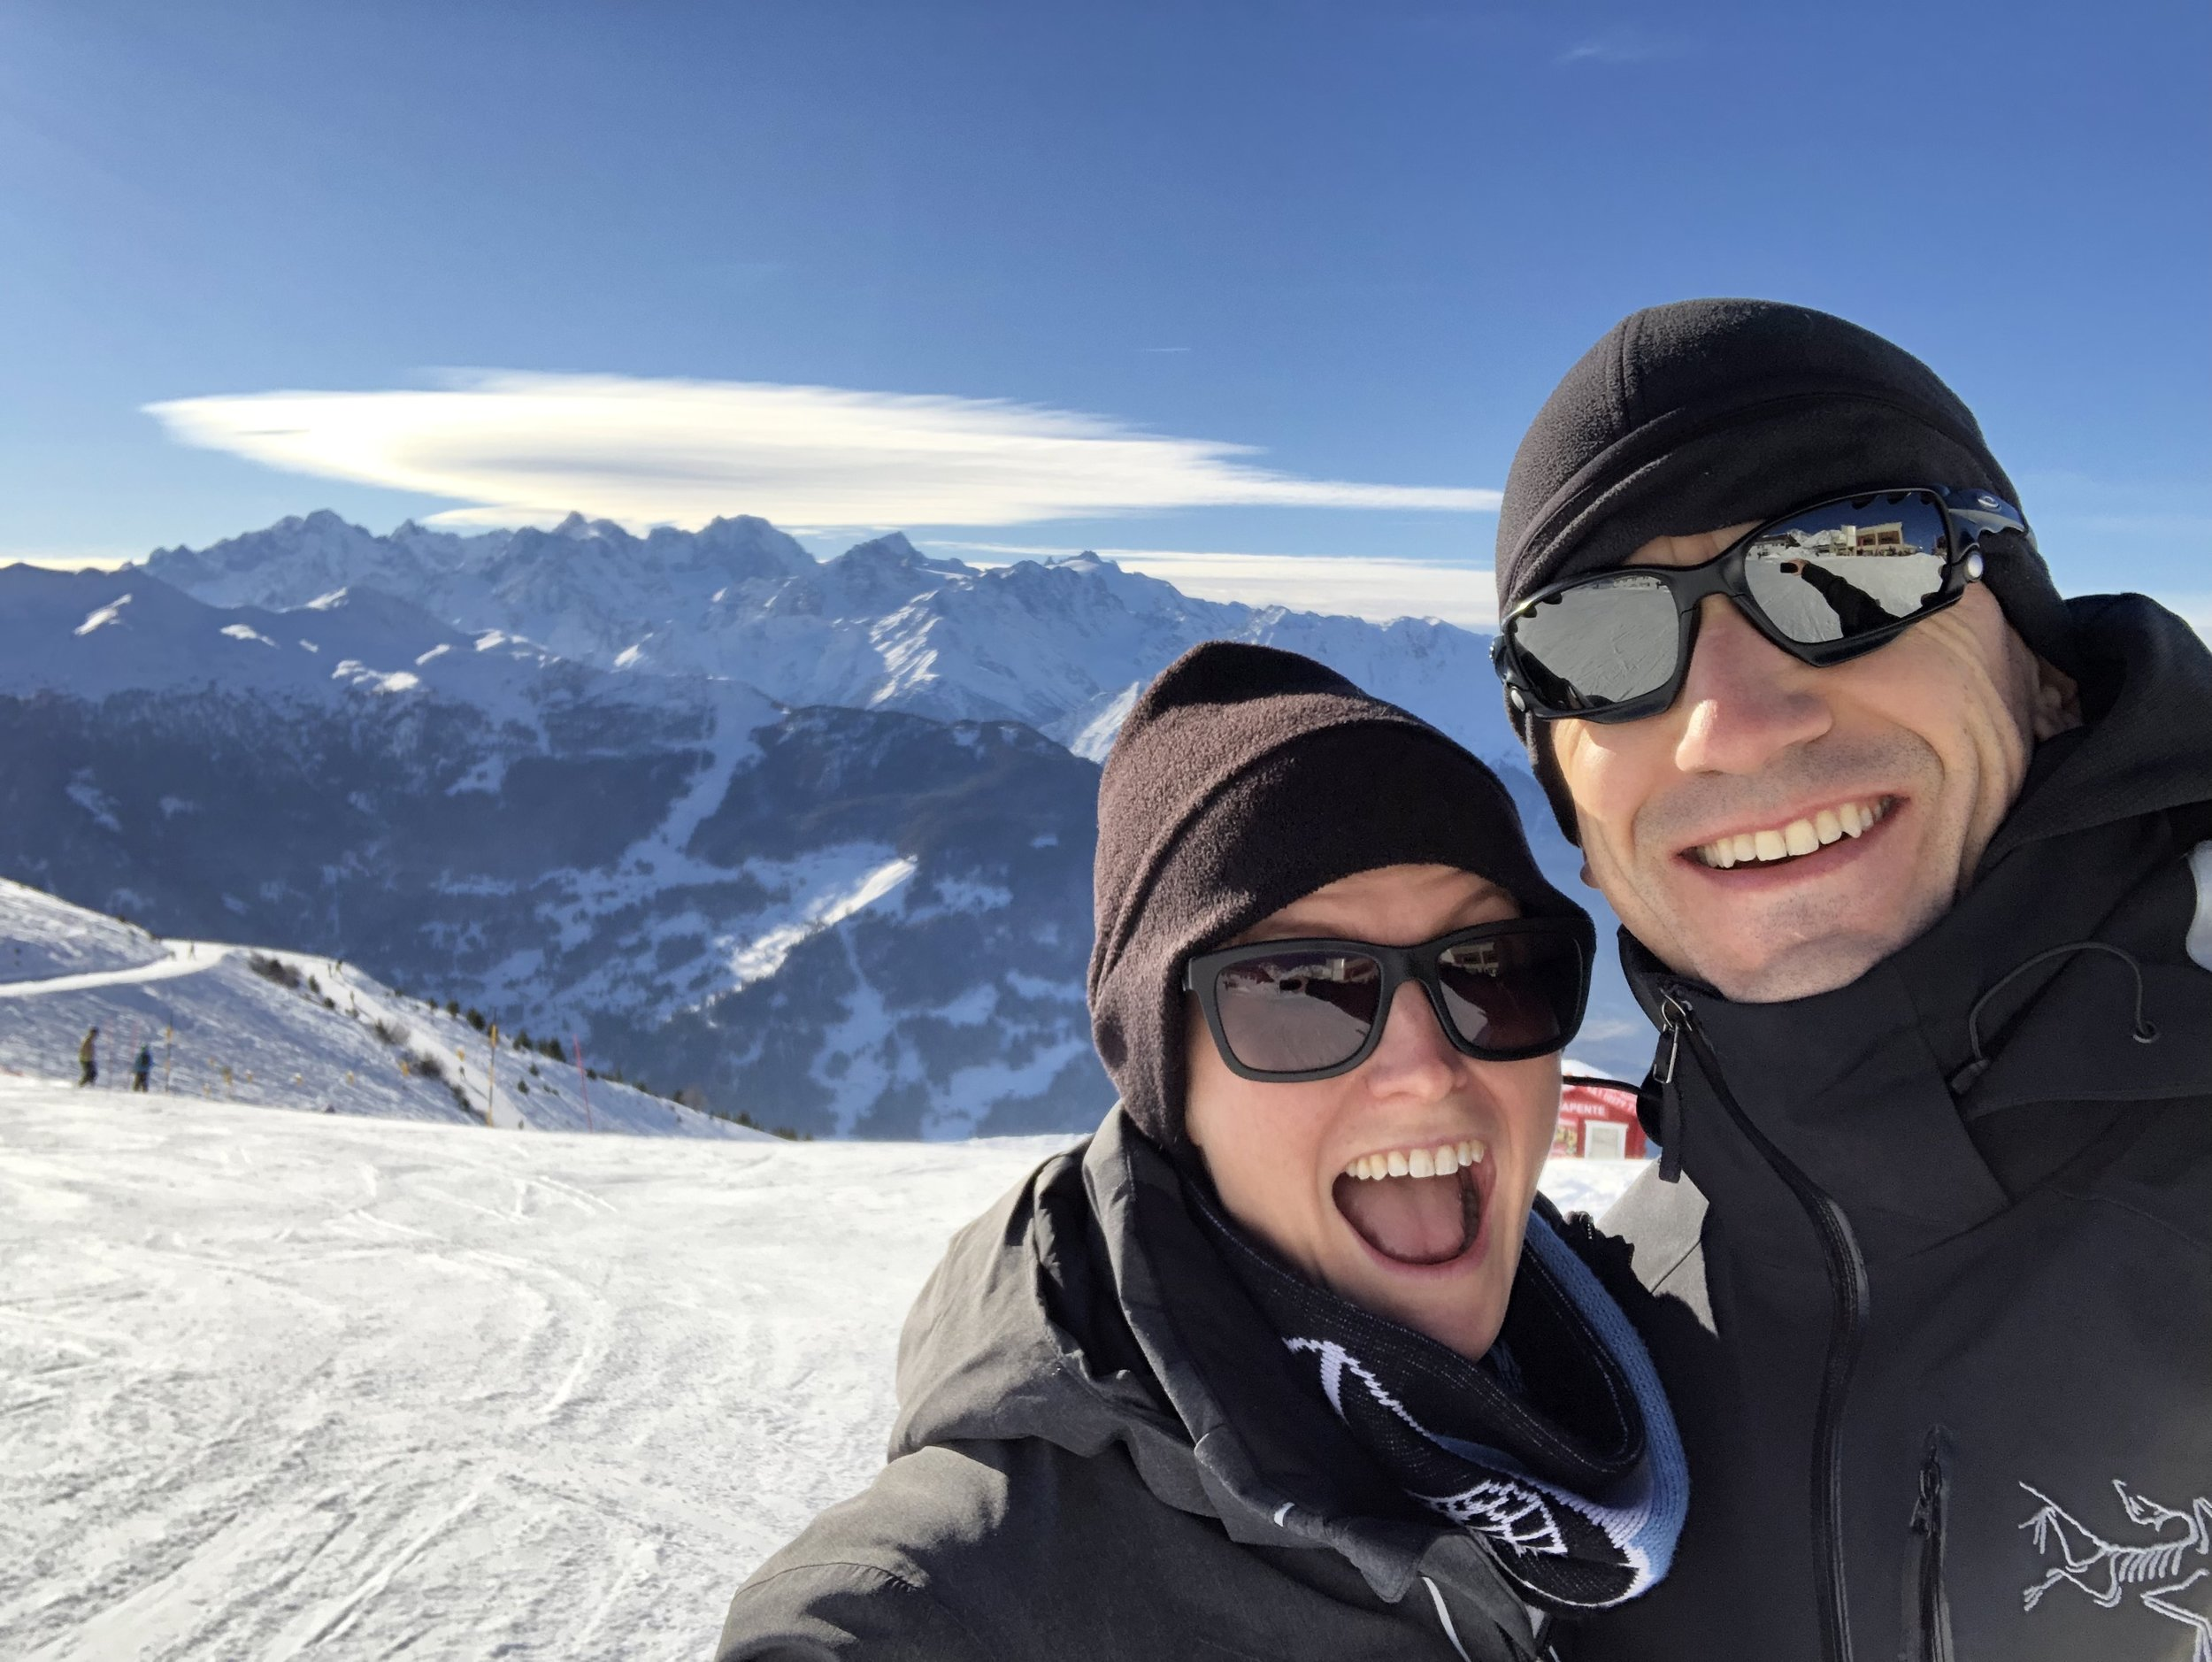 Leslie and Arnaud at the top of one of the Verbier ski slopes. Verbier, Switzerland, December 2018.